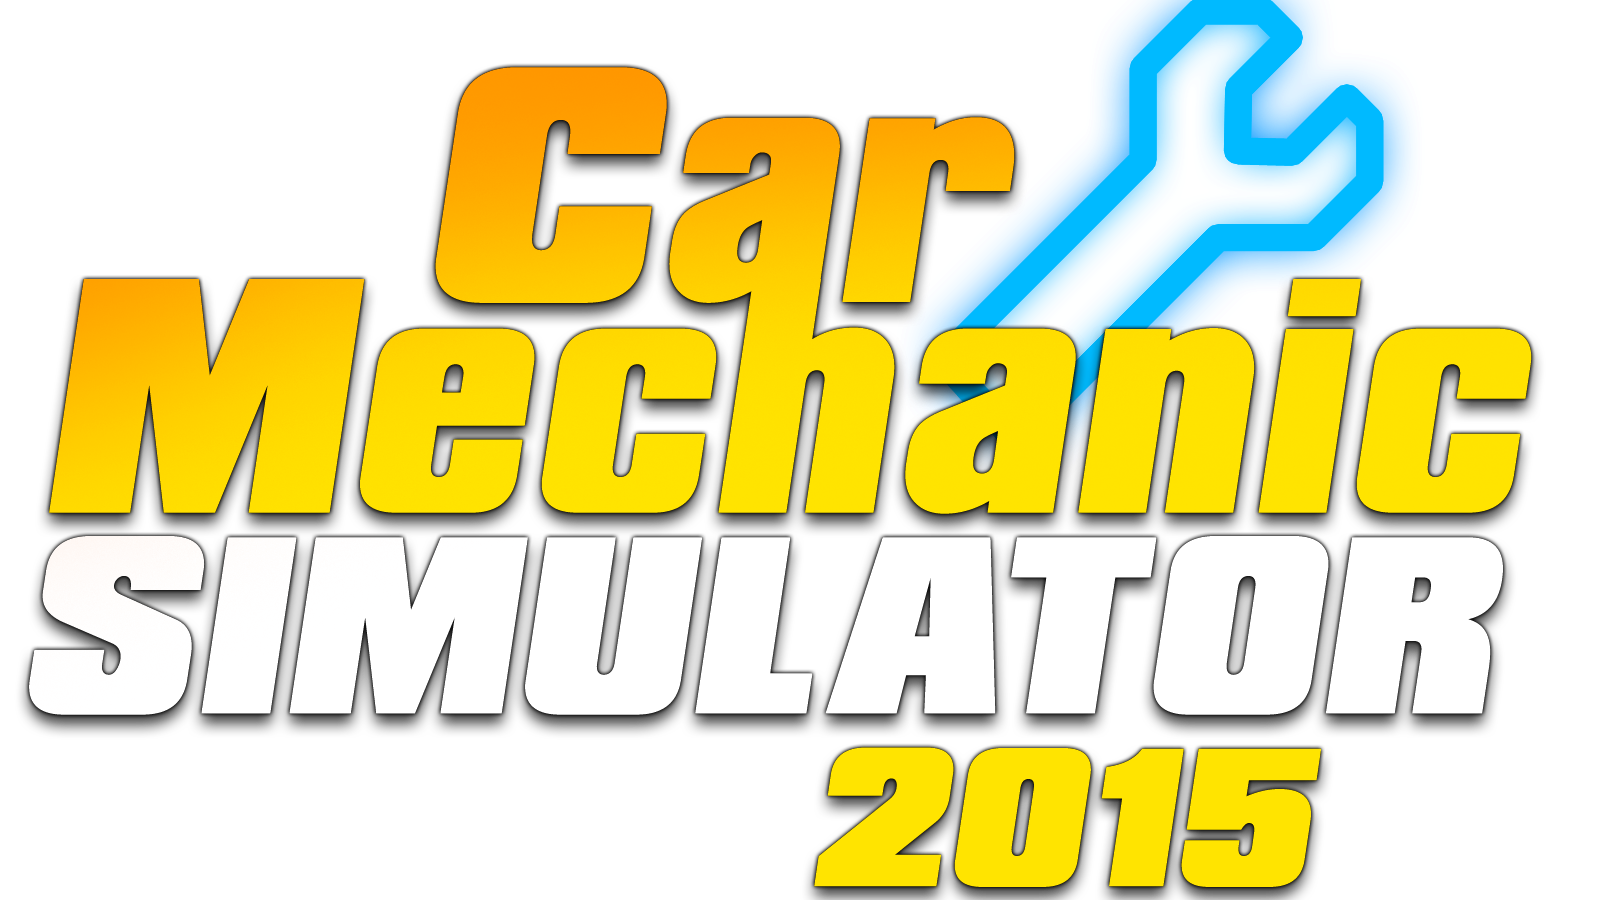 where can i buy car mechanic simulator 2018 for xbox one